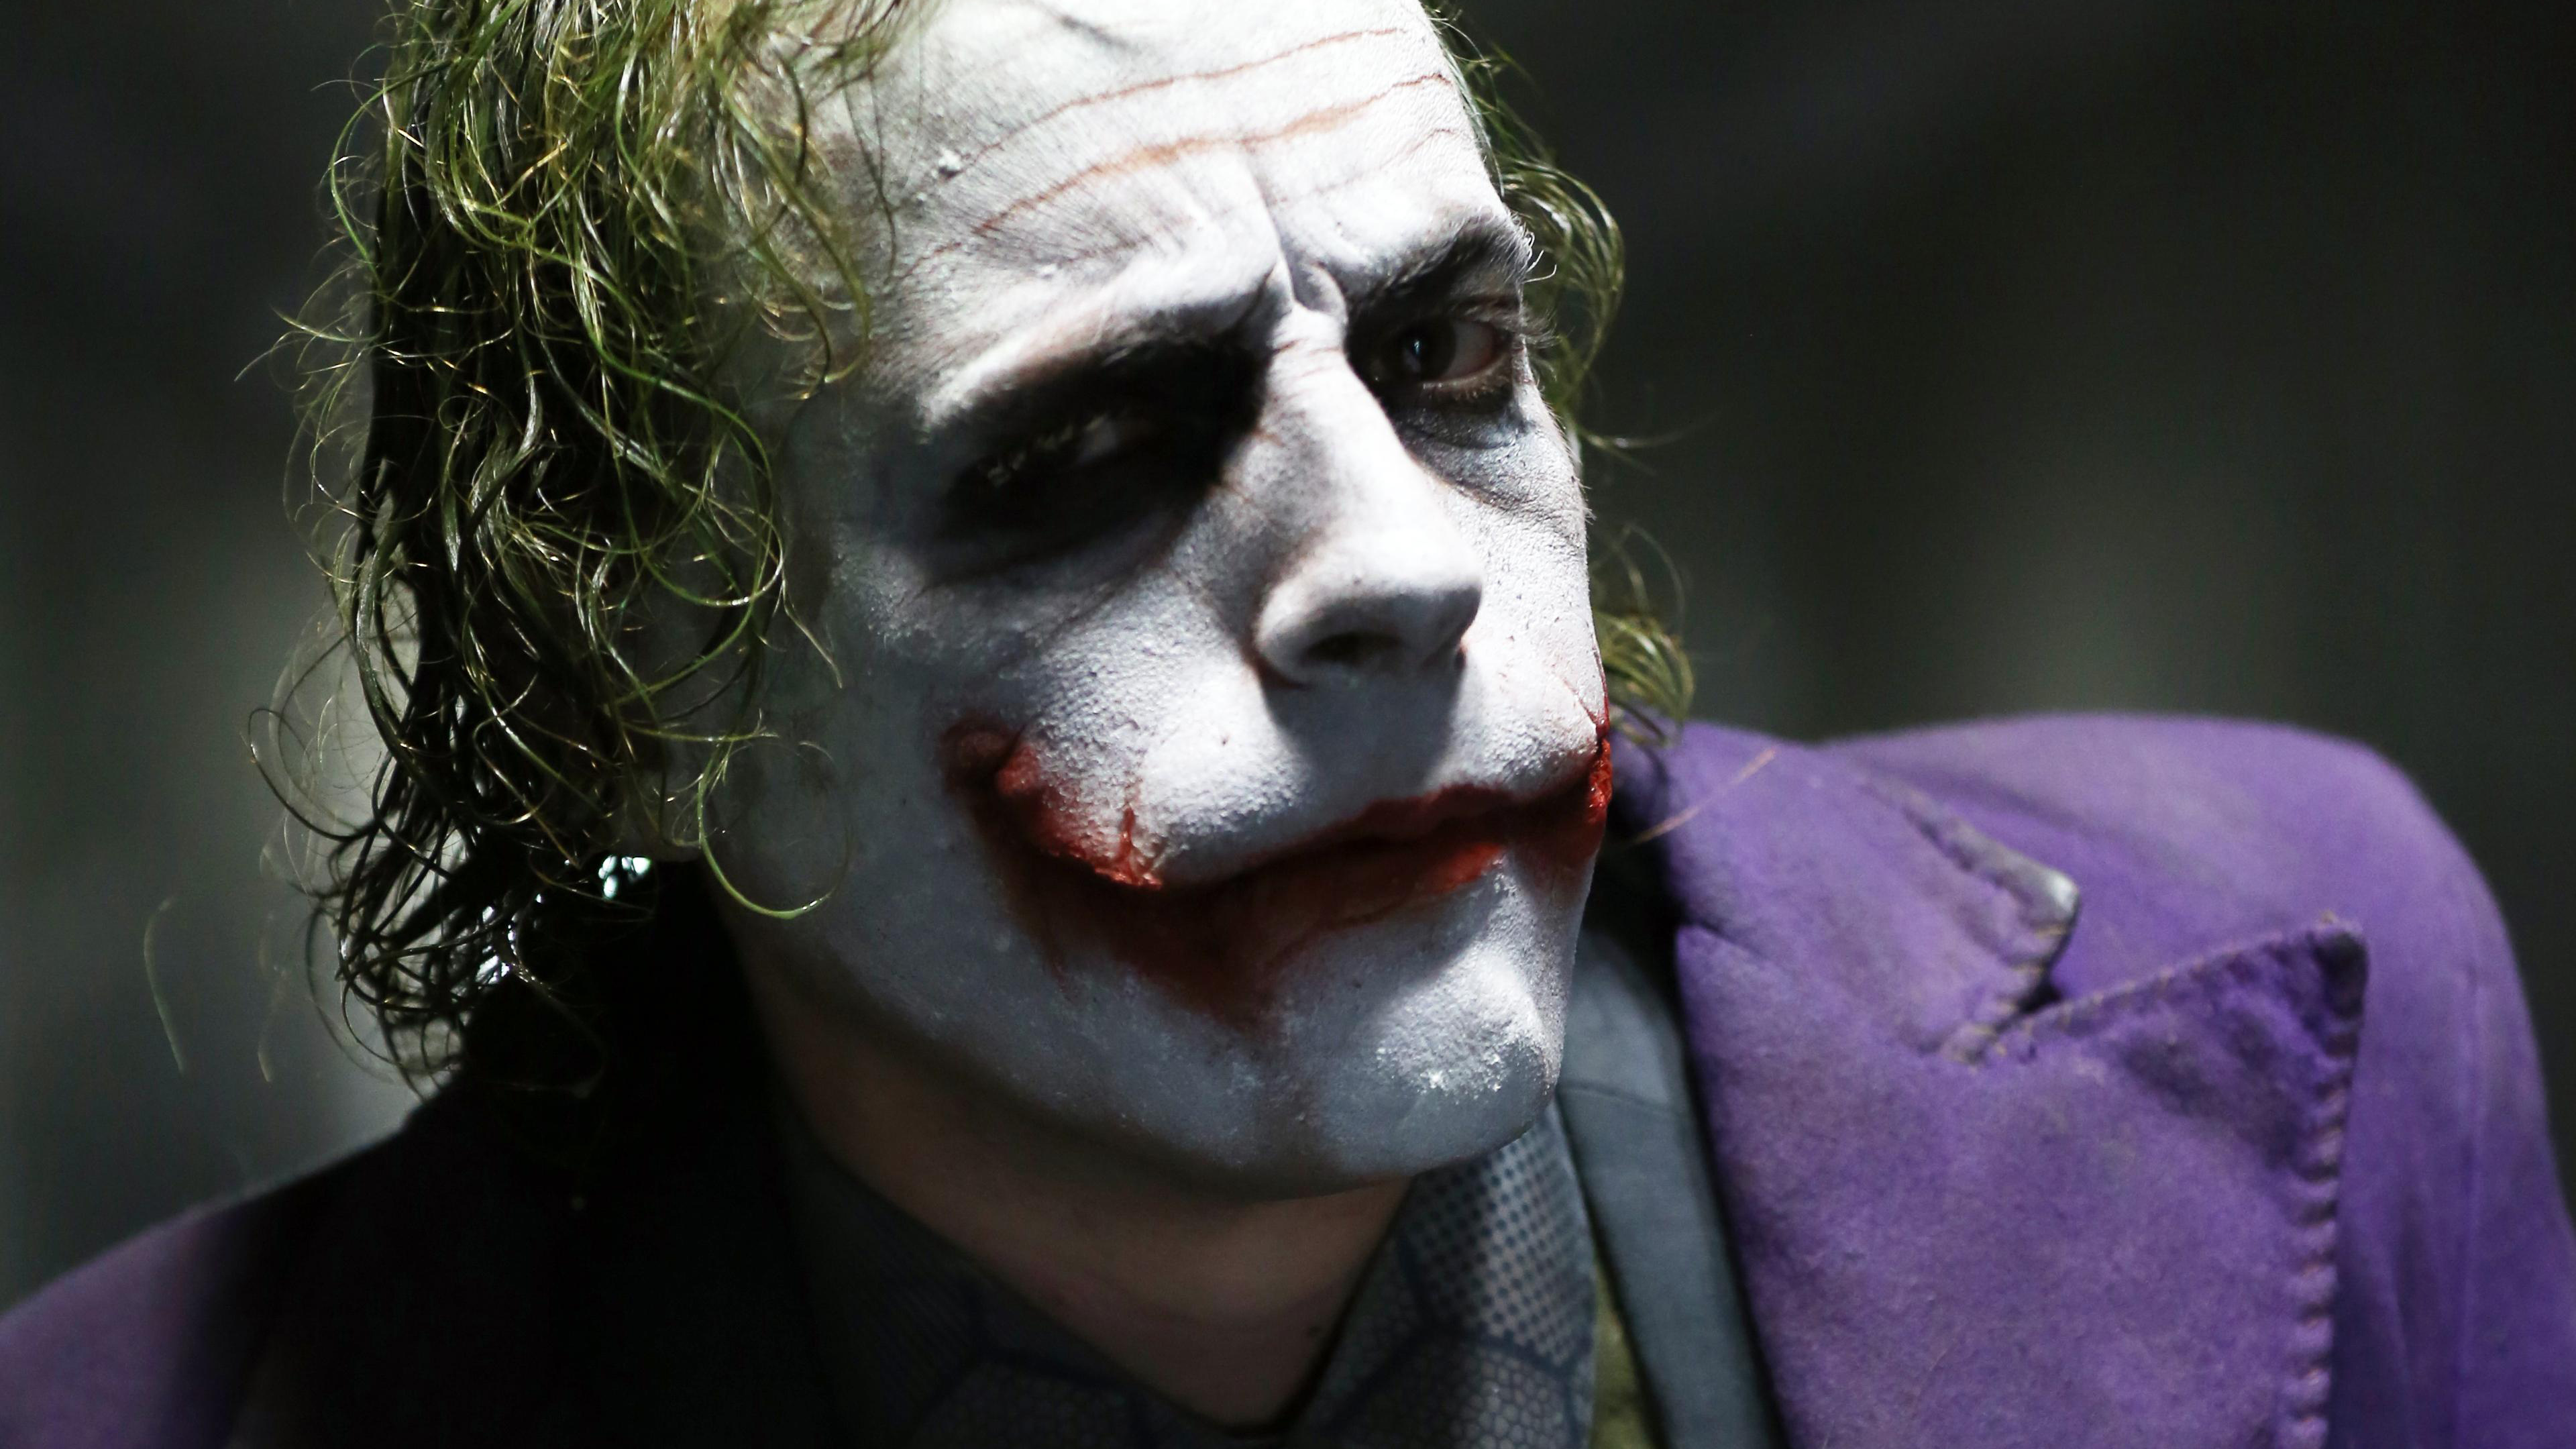 Joker Heath Ledger 4k Hd Superheroes 4k Wallpapers Images